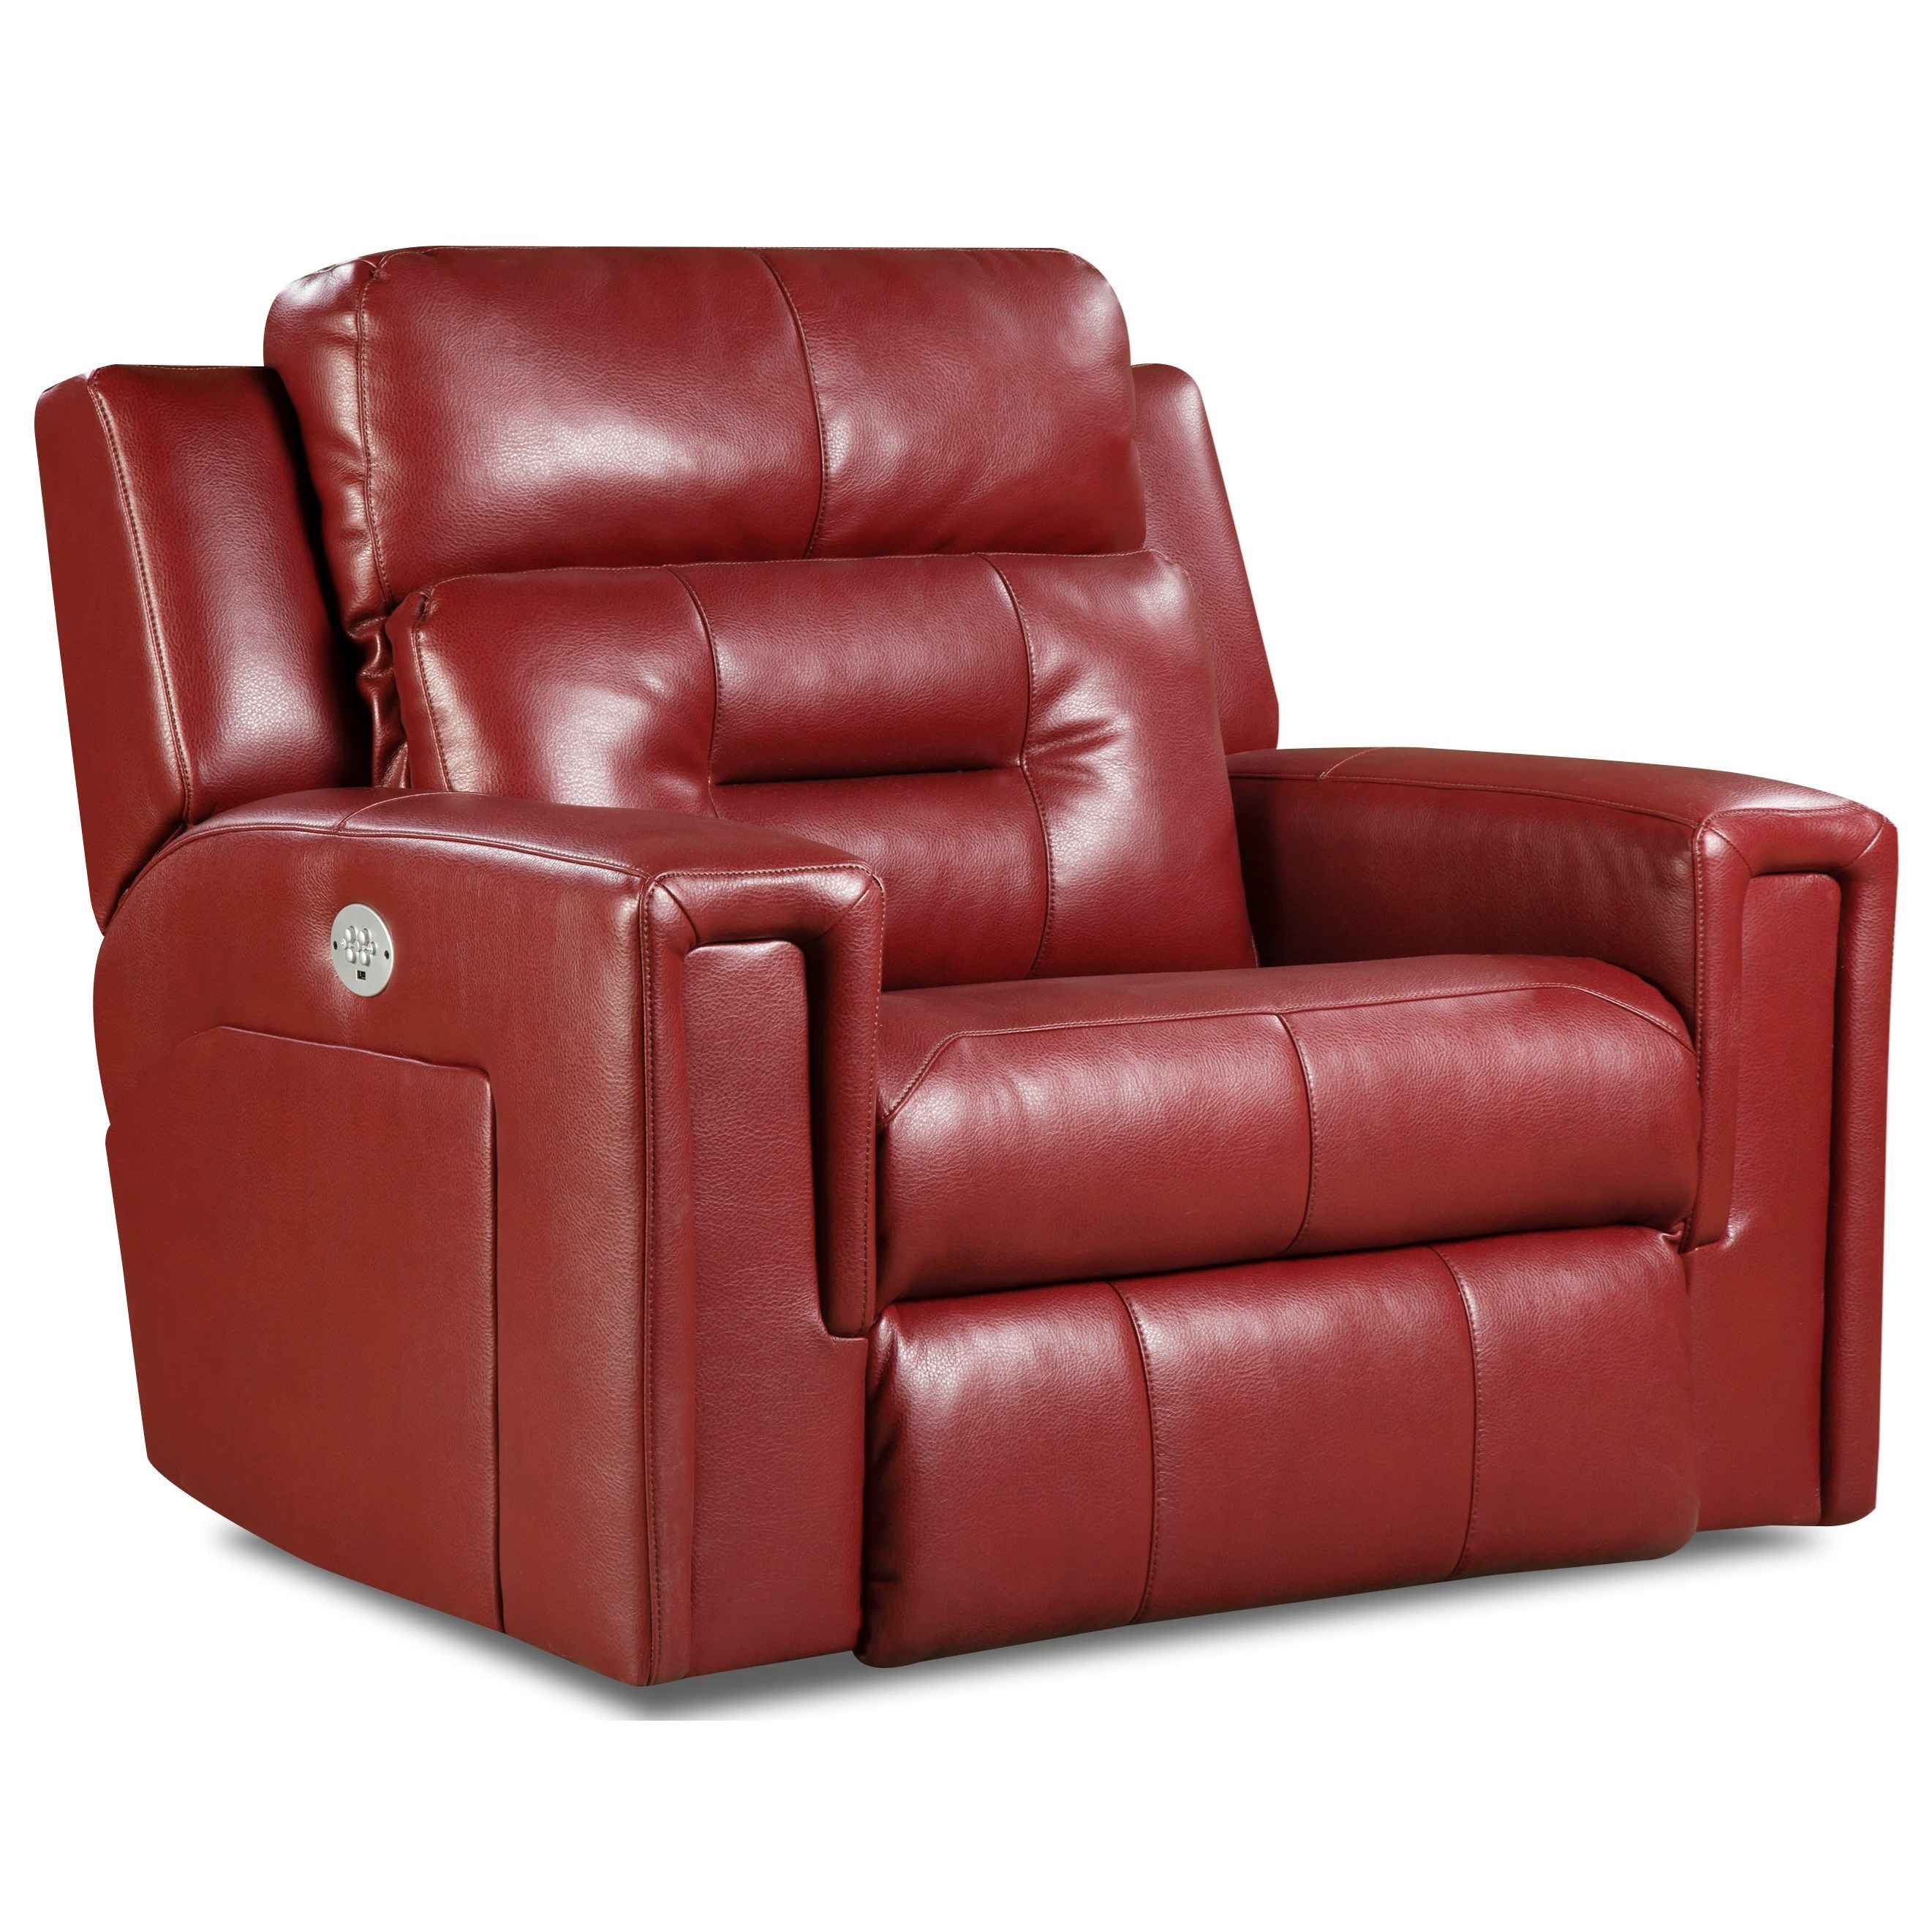 Excel Power Plus Reclining Chair and a Half by Southern Motion at Furniture Superstore - Rochester, MN